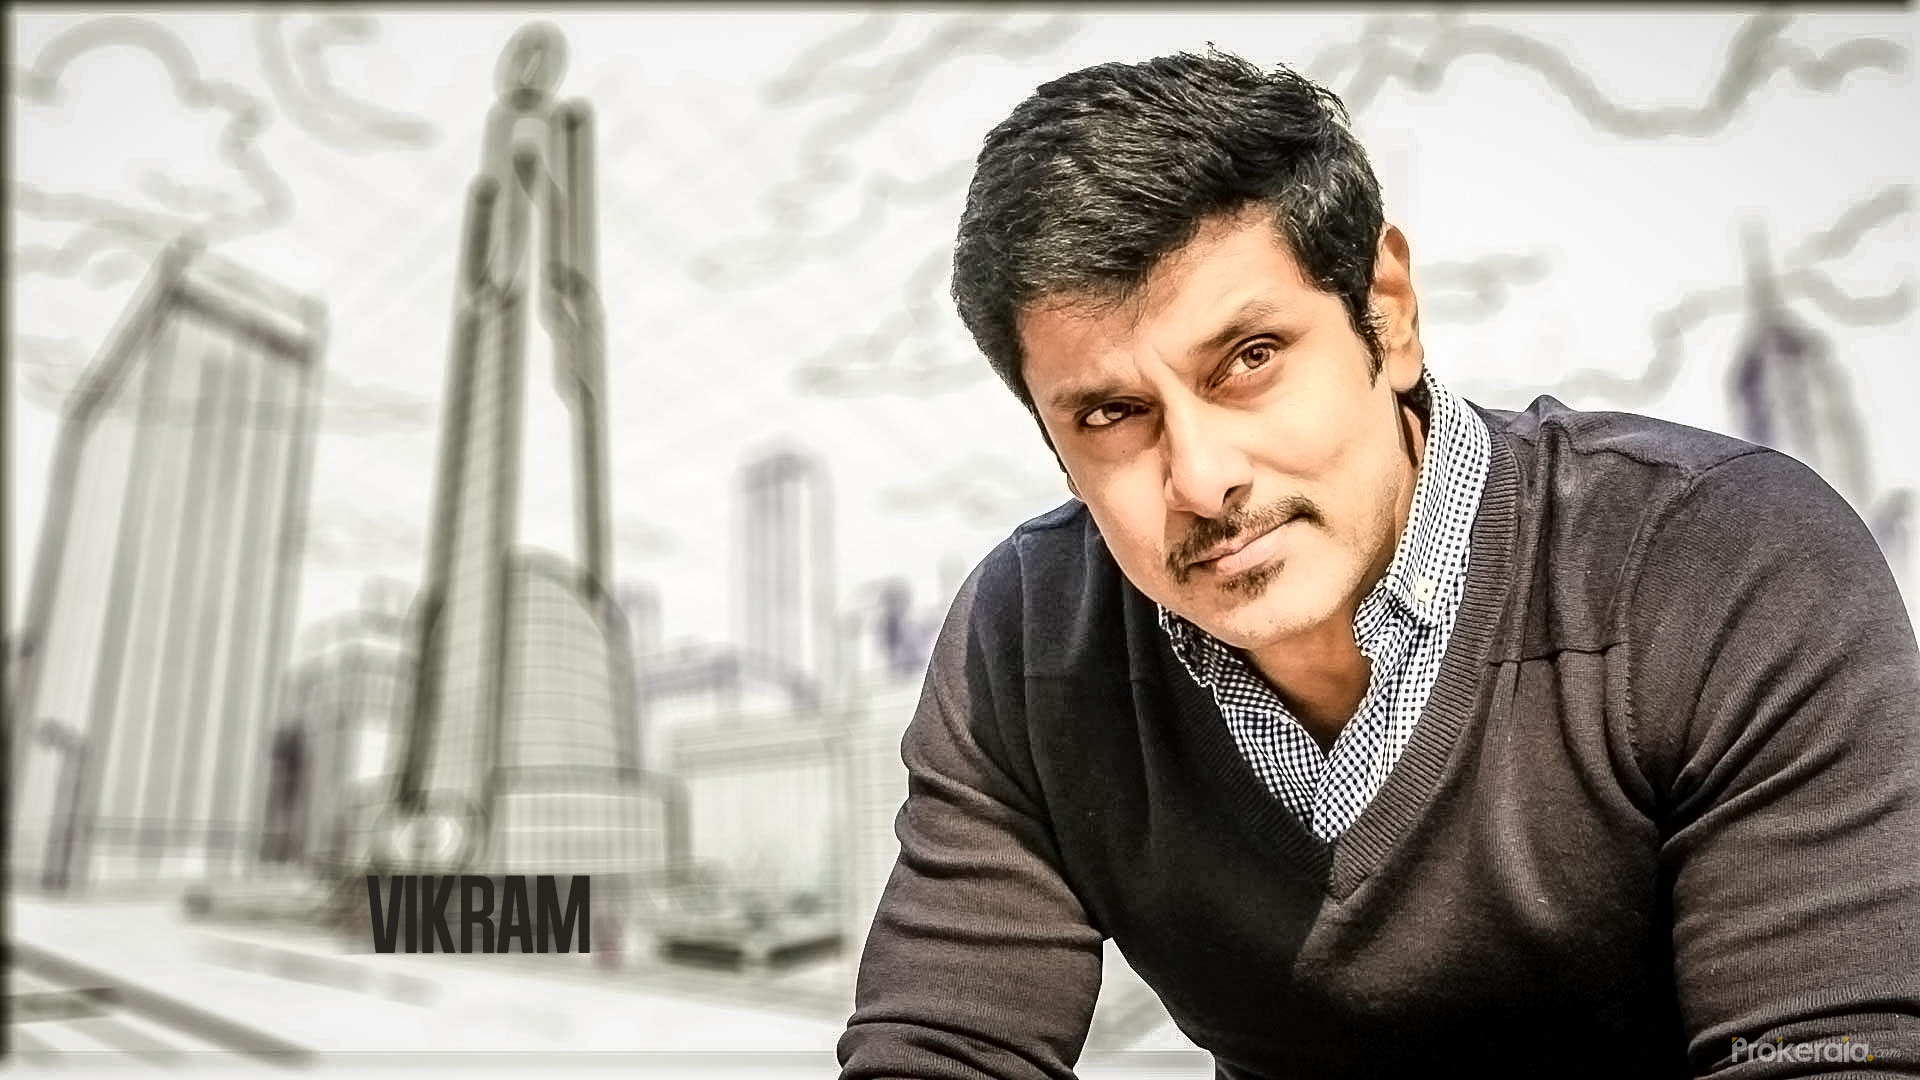 Vikram Wallpaper